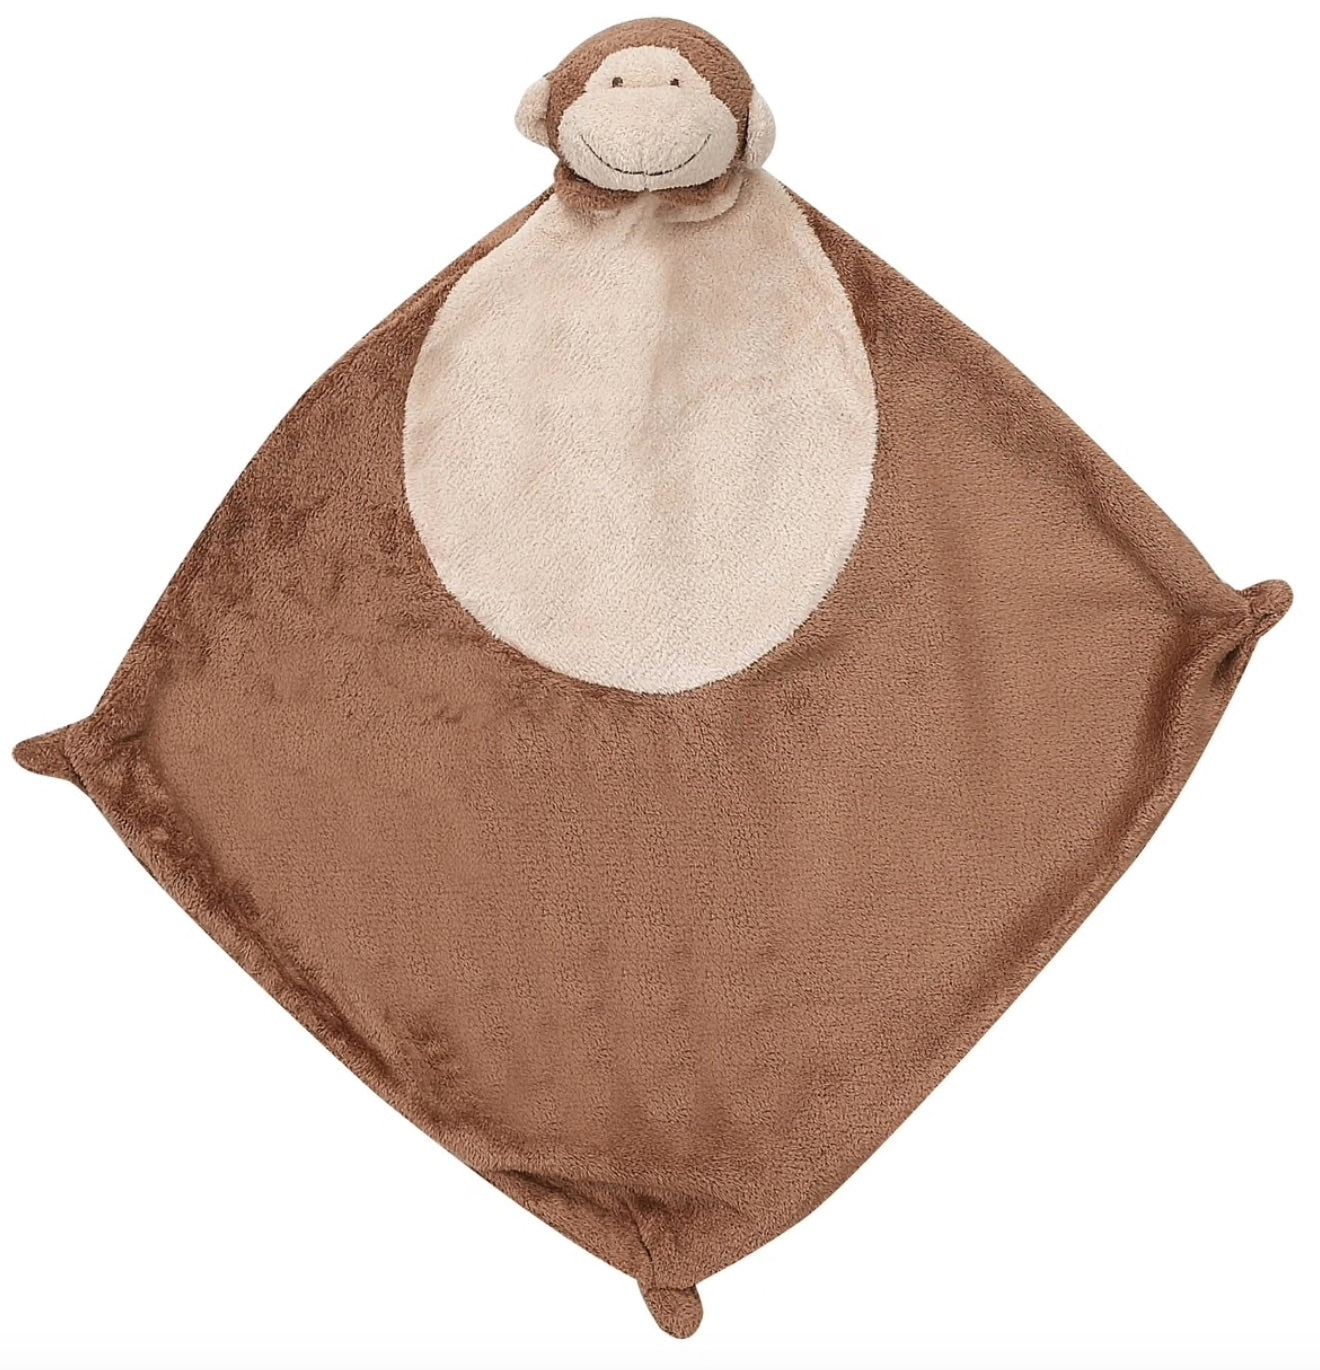 Brown Monkey Blankie